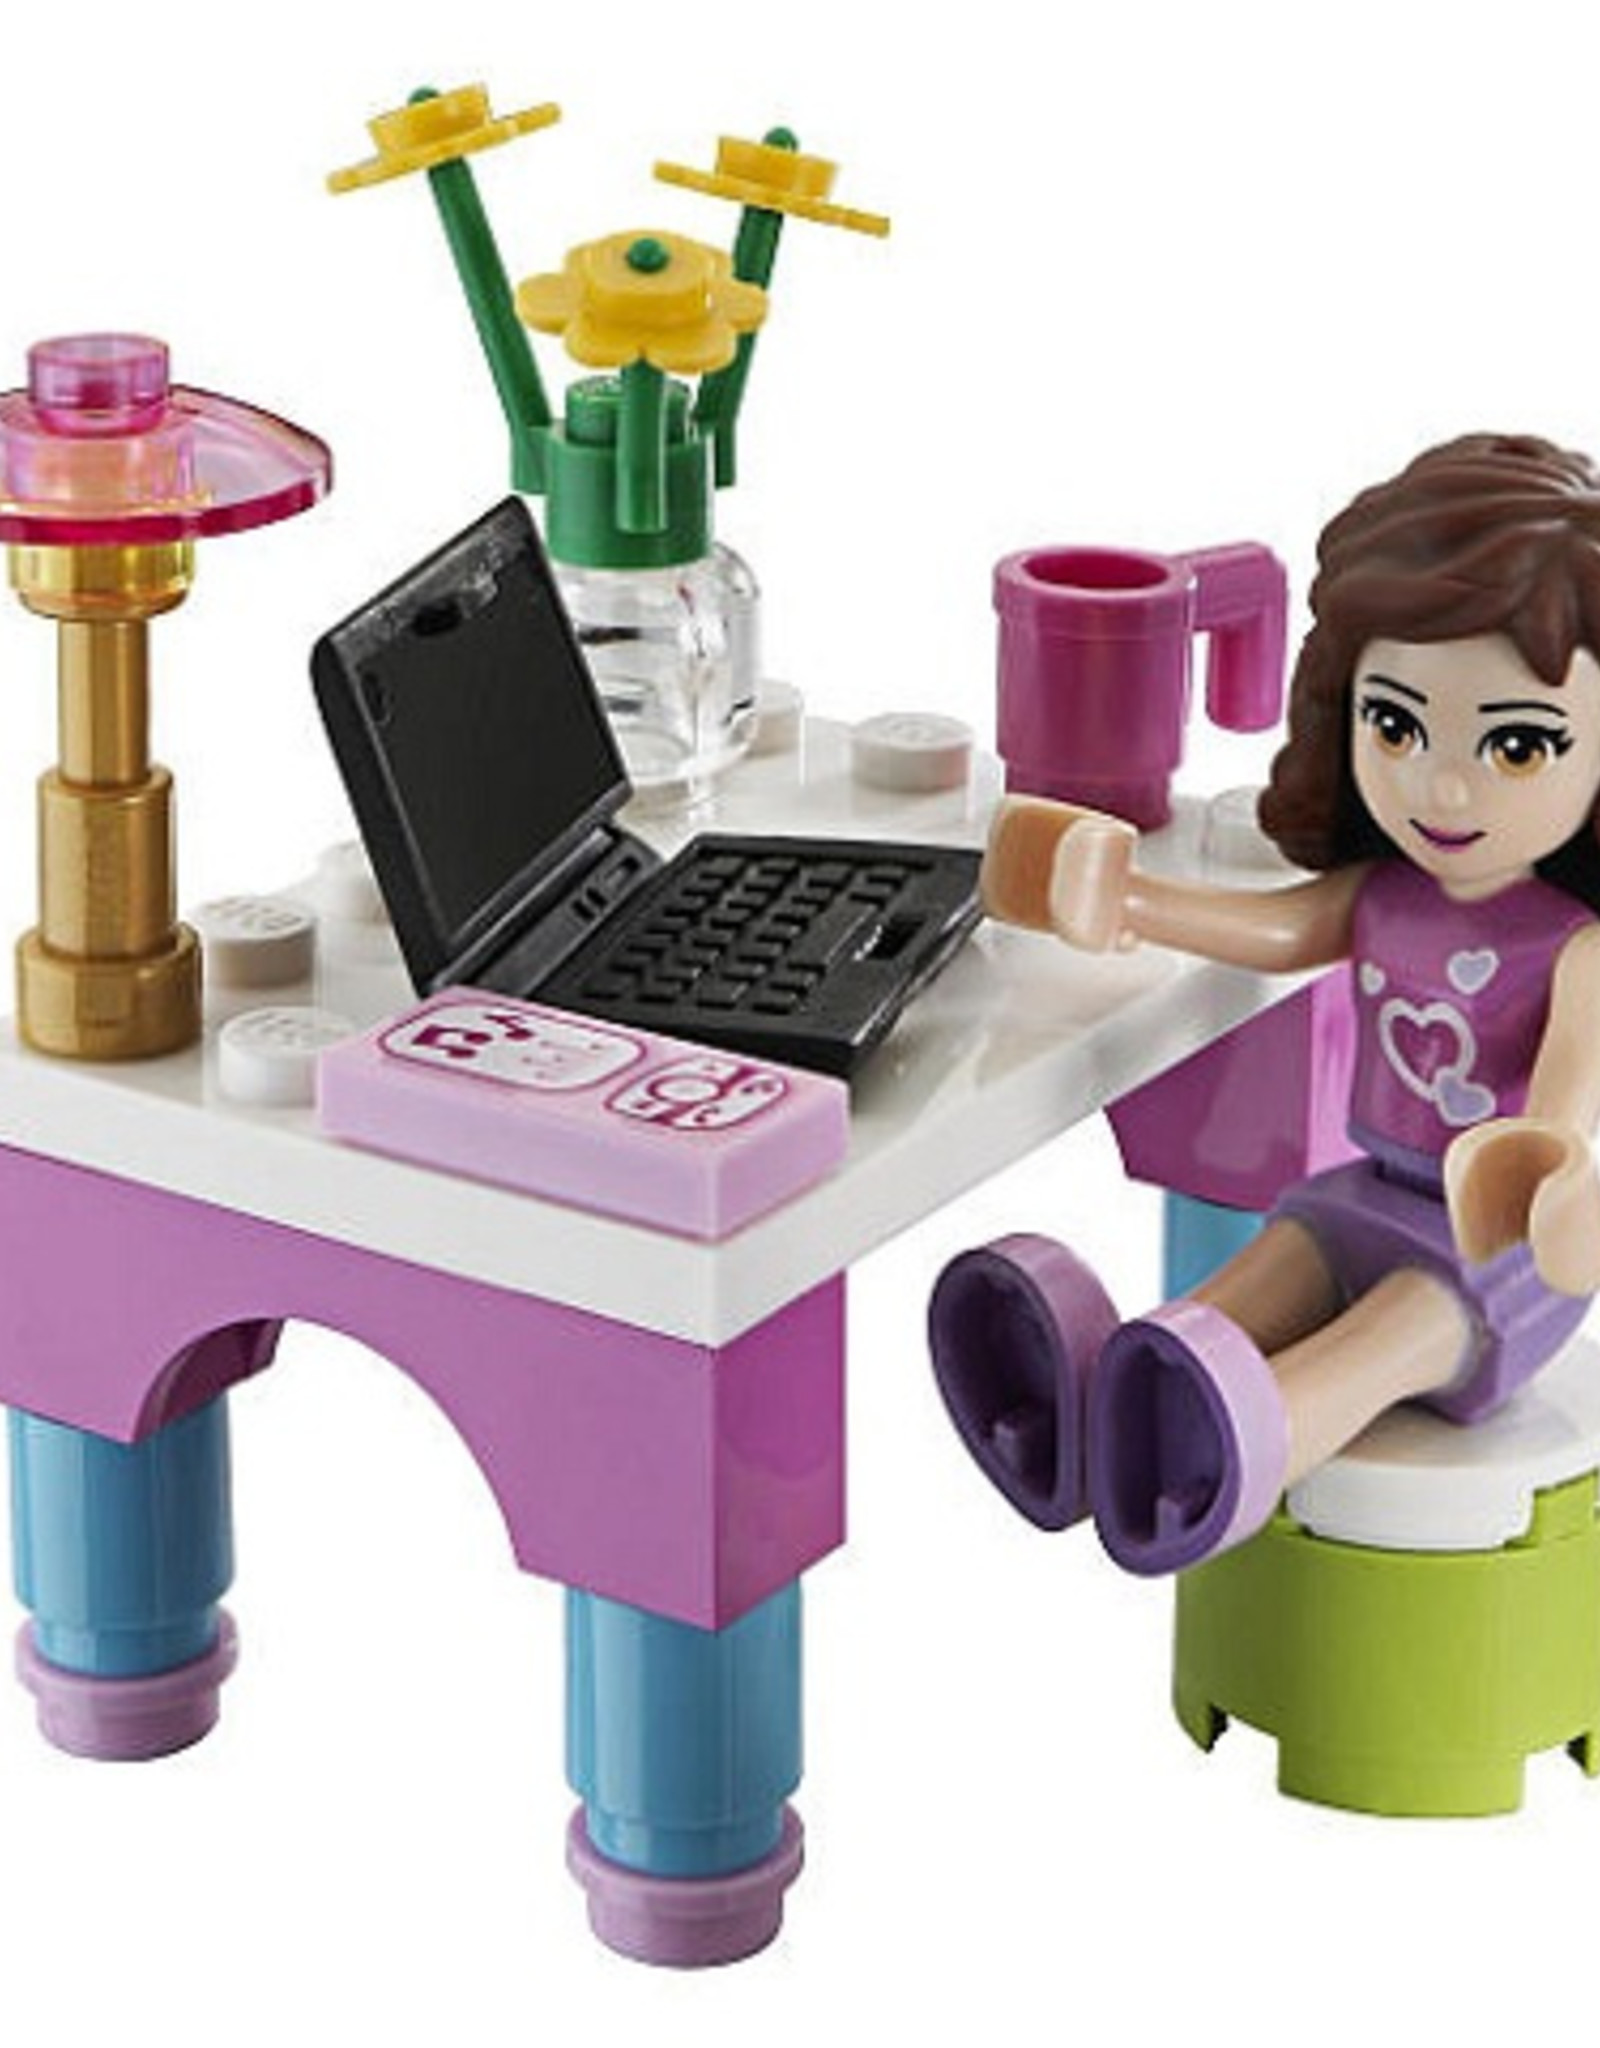 LEGO LEGO 30102 Olivia's Desk FRIENDS